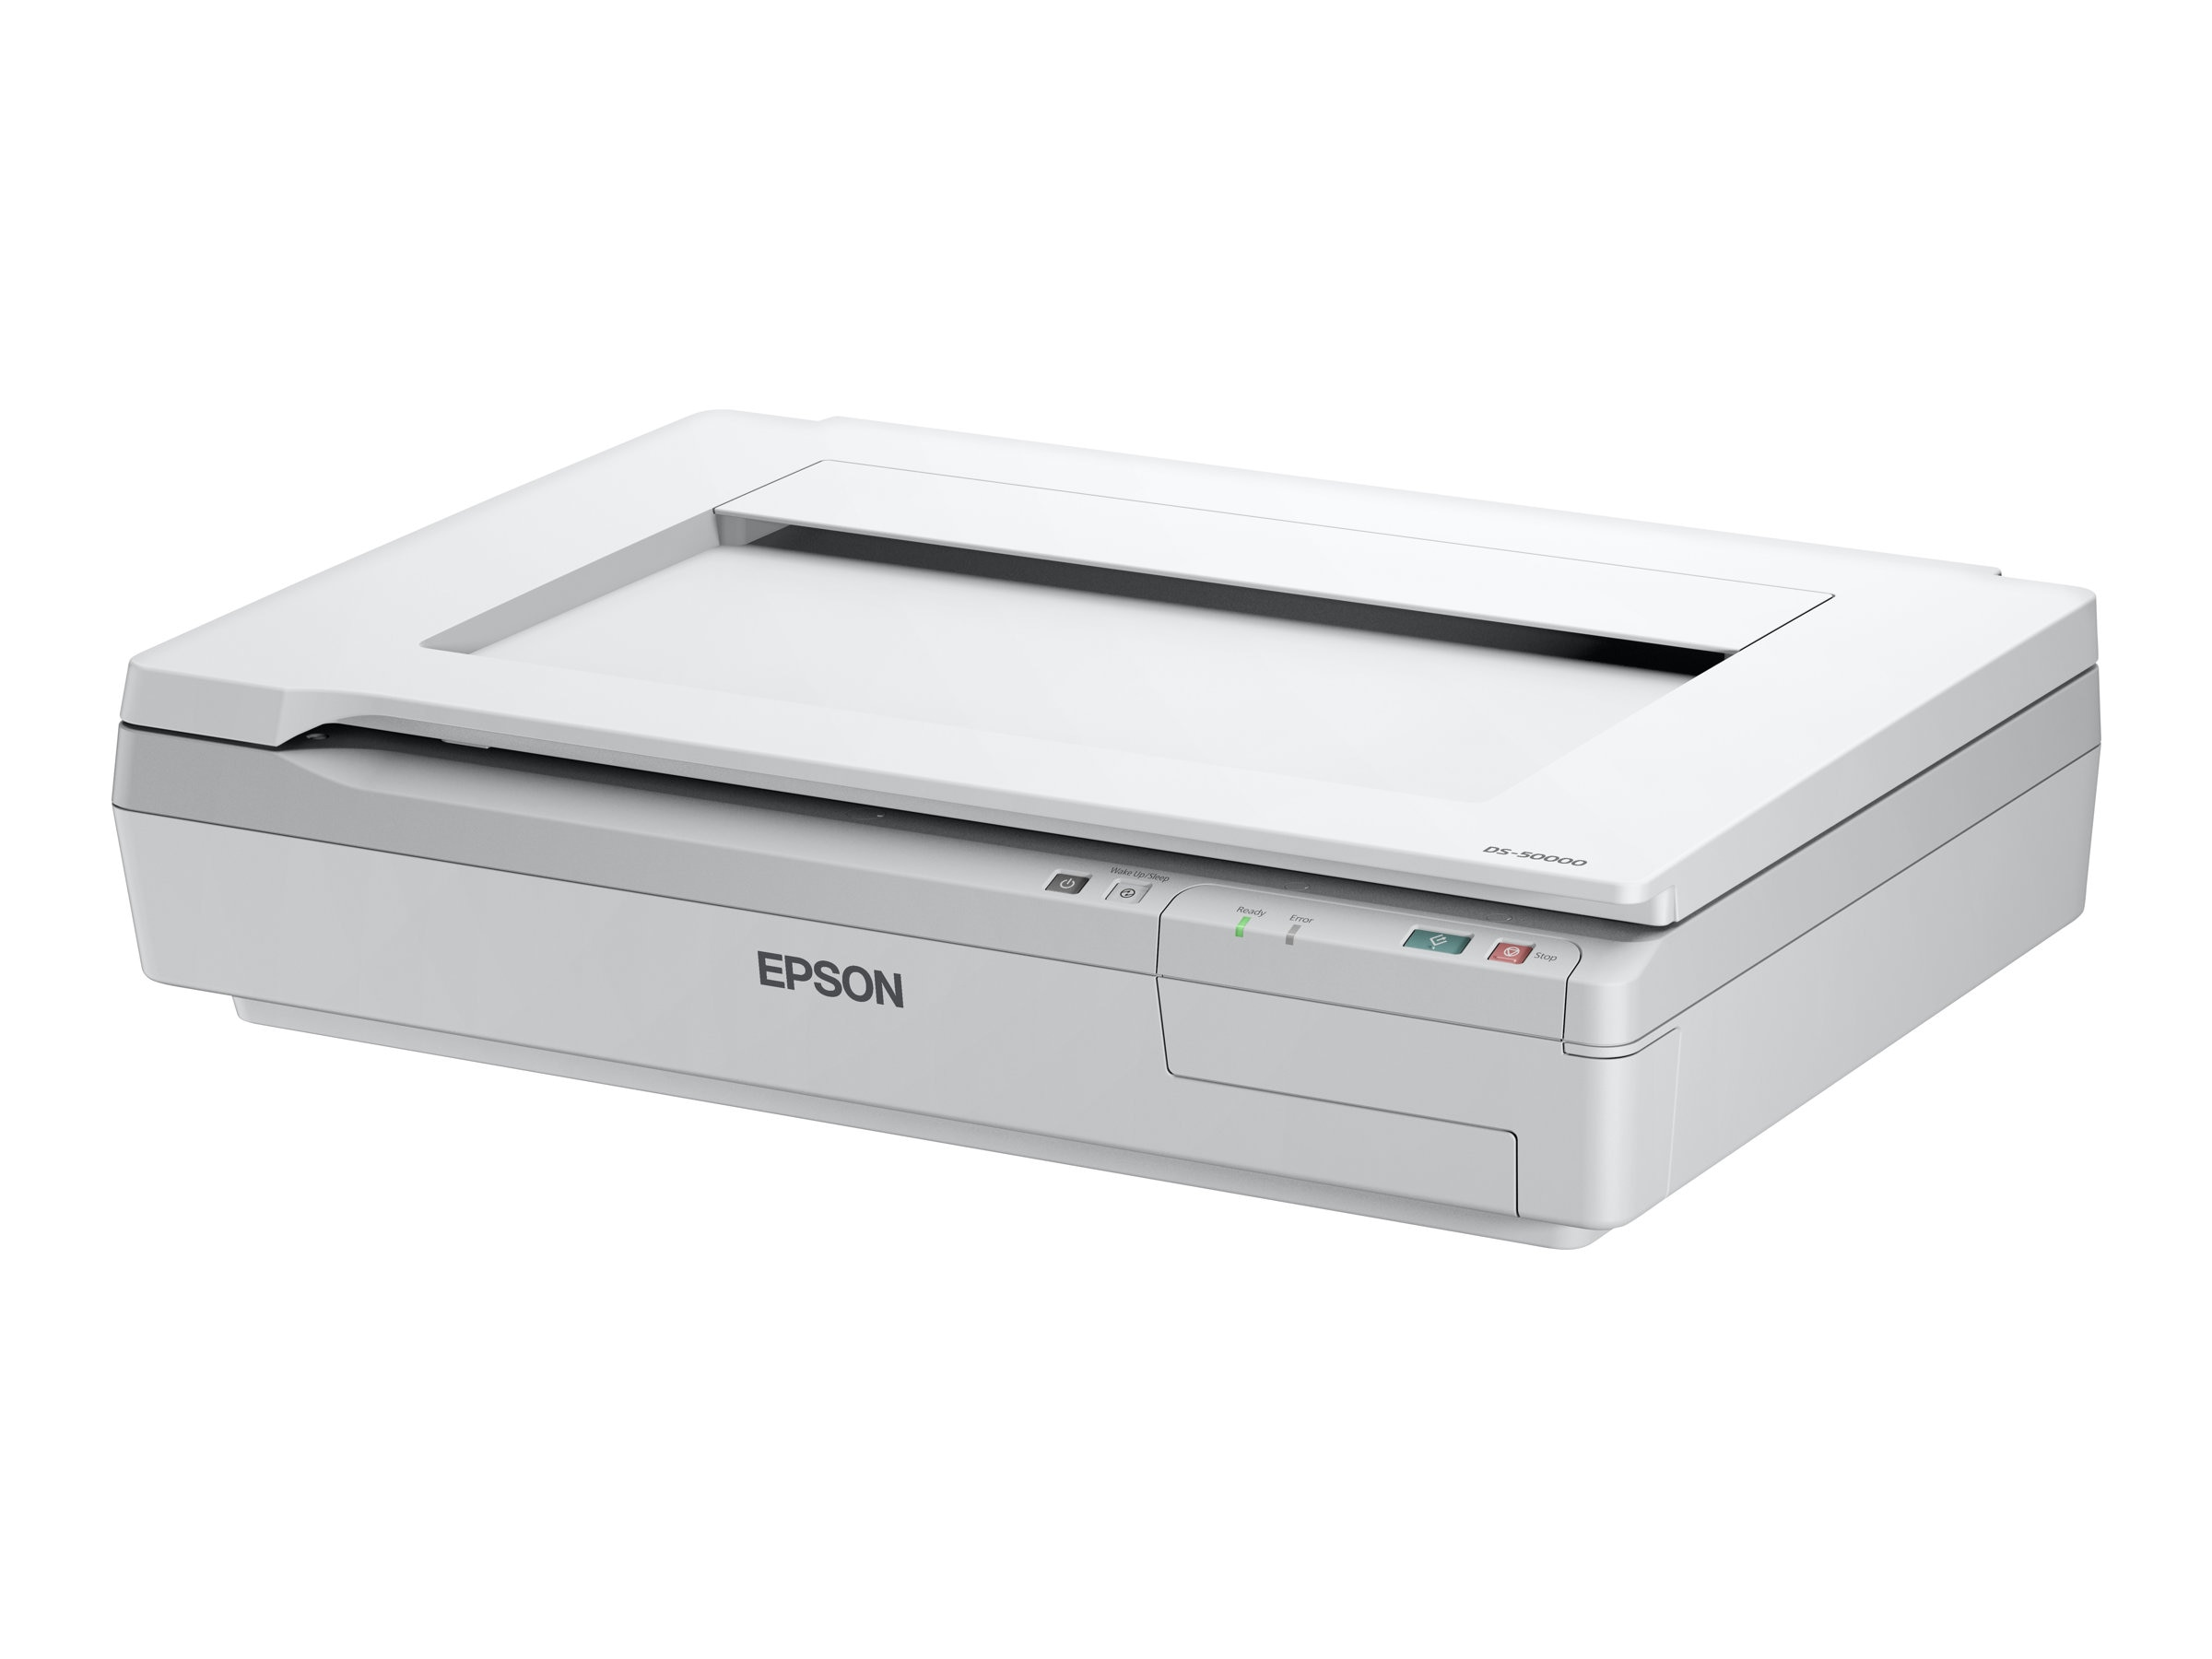 Epson Workforce DS-50000 Scanner - $1499 less instant rebate of $60.00, B11B204121, 14777419, Scanners